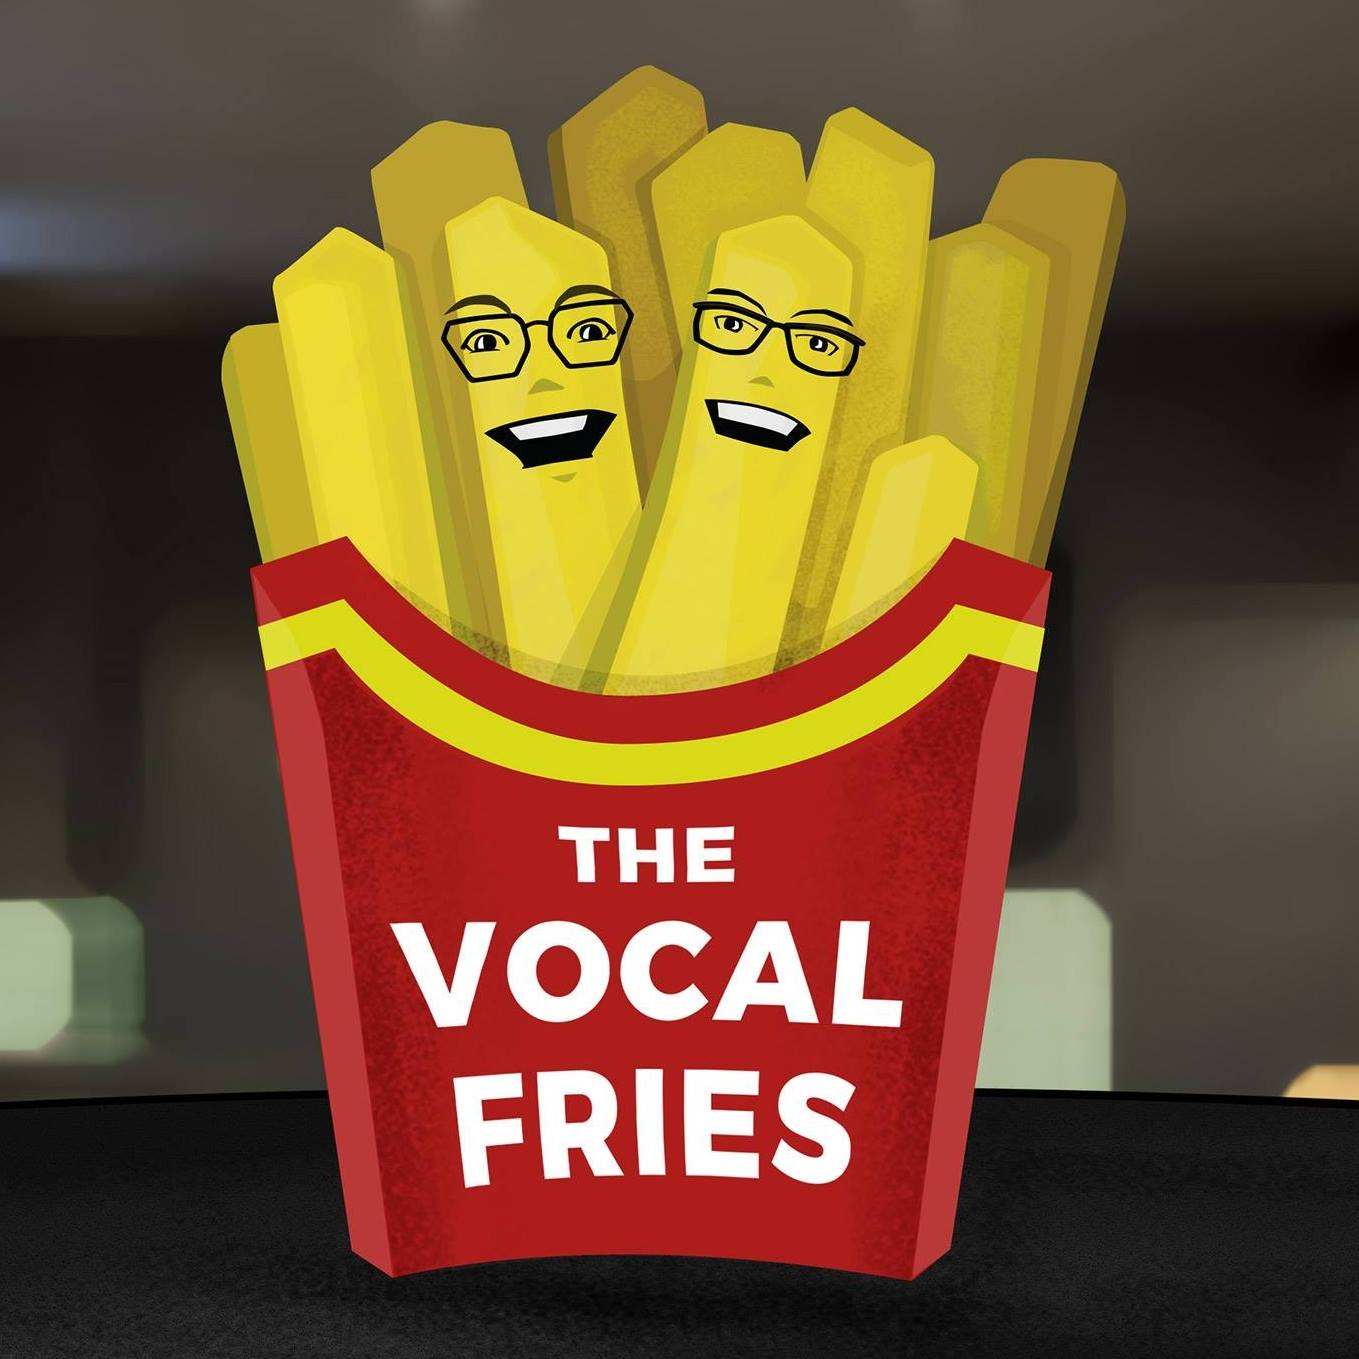 The Vocal Fries - Two linguists, Carrie Gillon and Megan Figueroa, discuss linguistic discrimination...essentially, why we judge people for how they talk and why we should stop doing it.Produced and edited by Chris Ayers.VocalFriesPod.tumblr.com